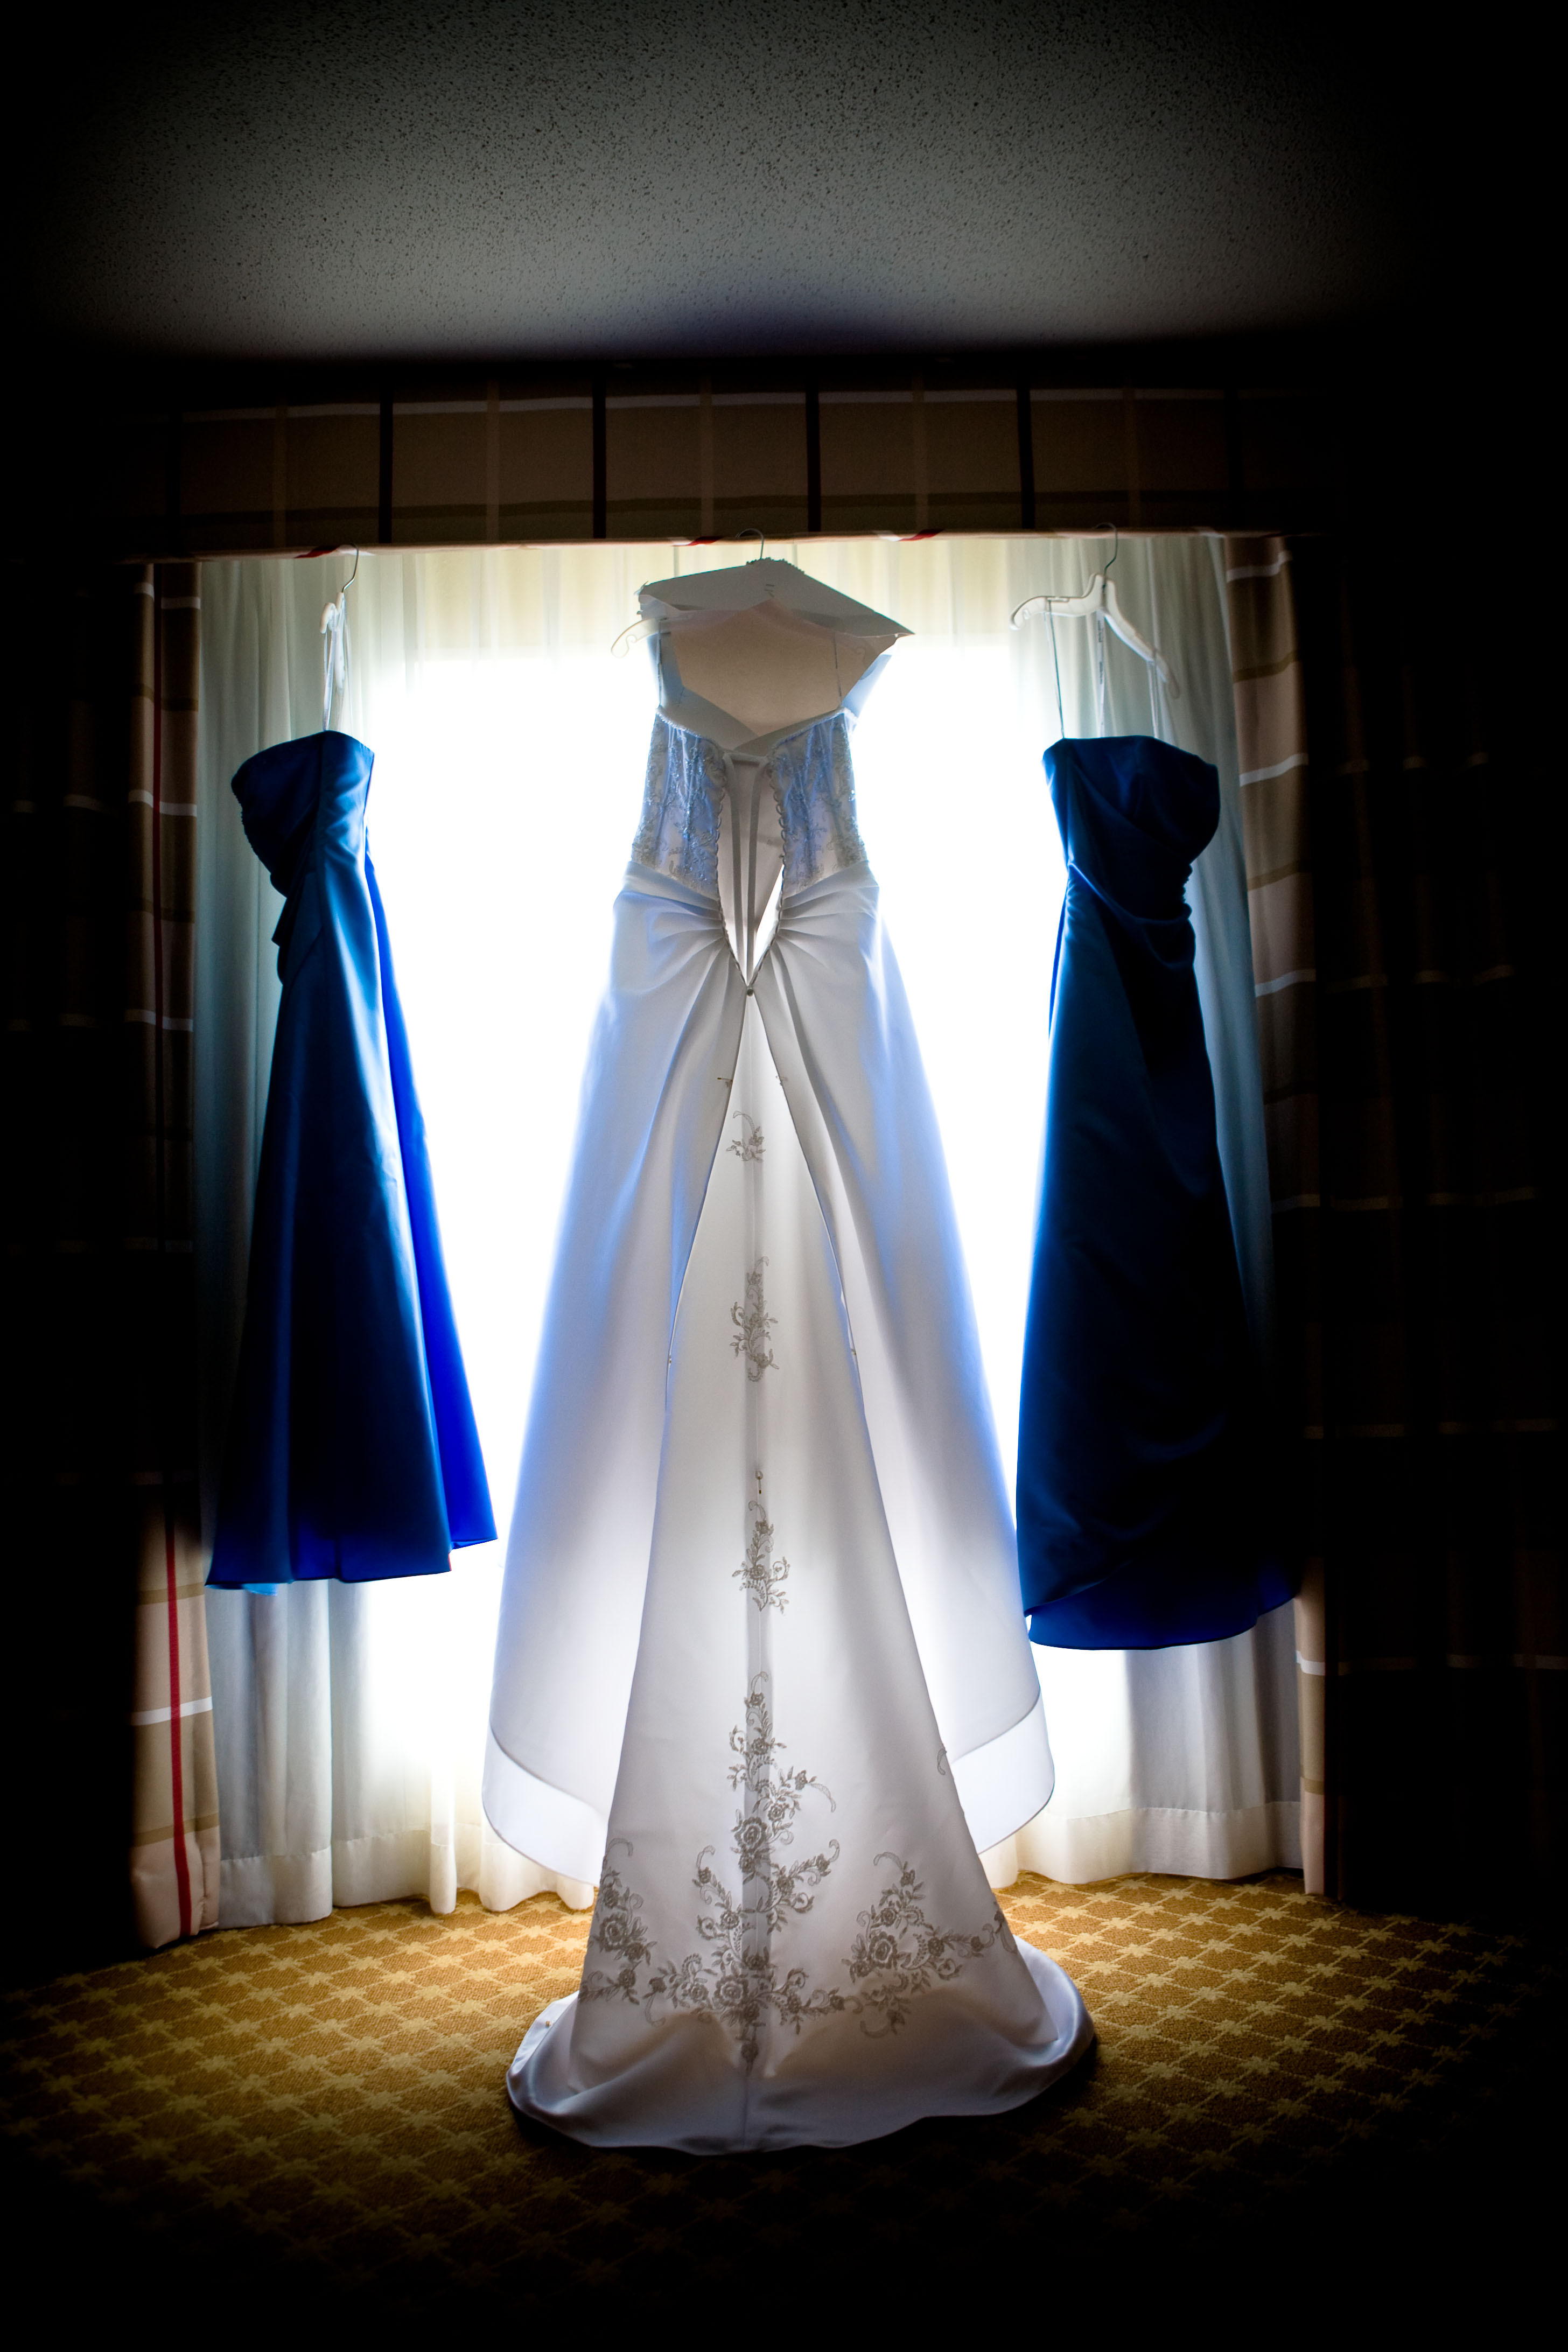 Wedding Dresses, Fashion, dress, Wedding, Backlit, Custom images